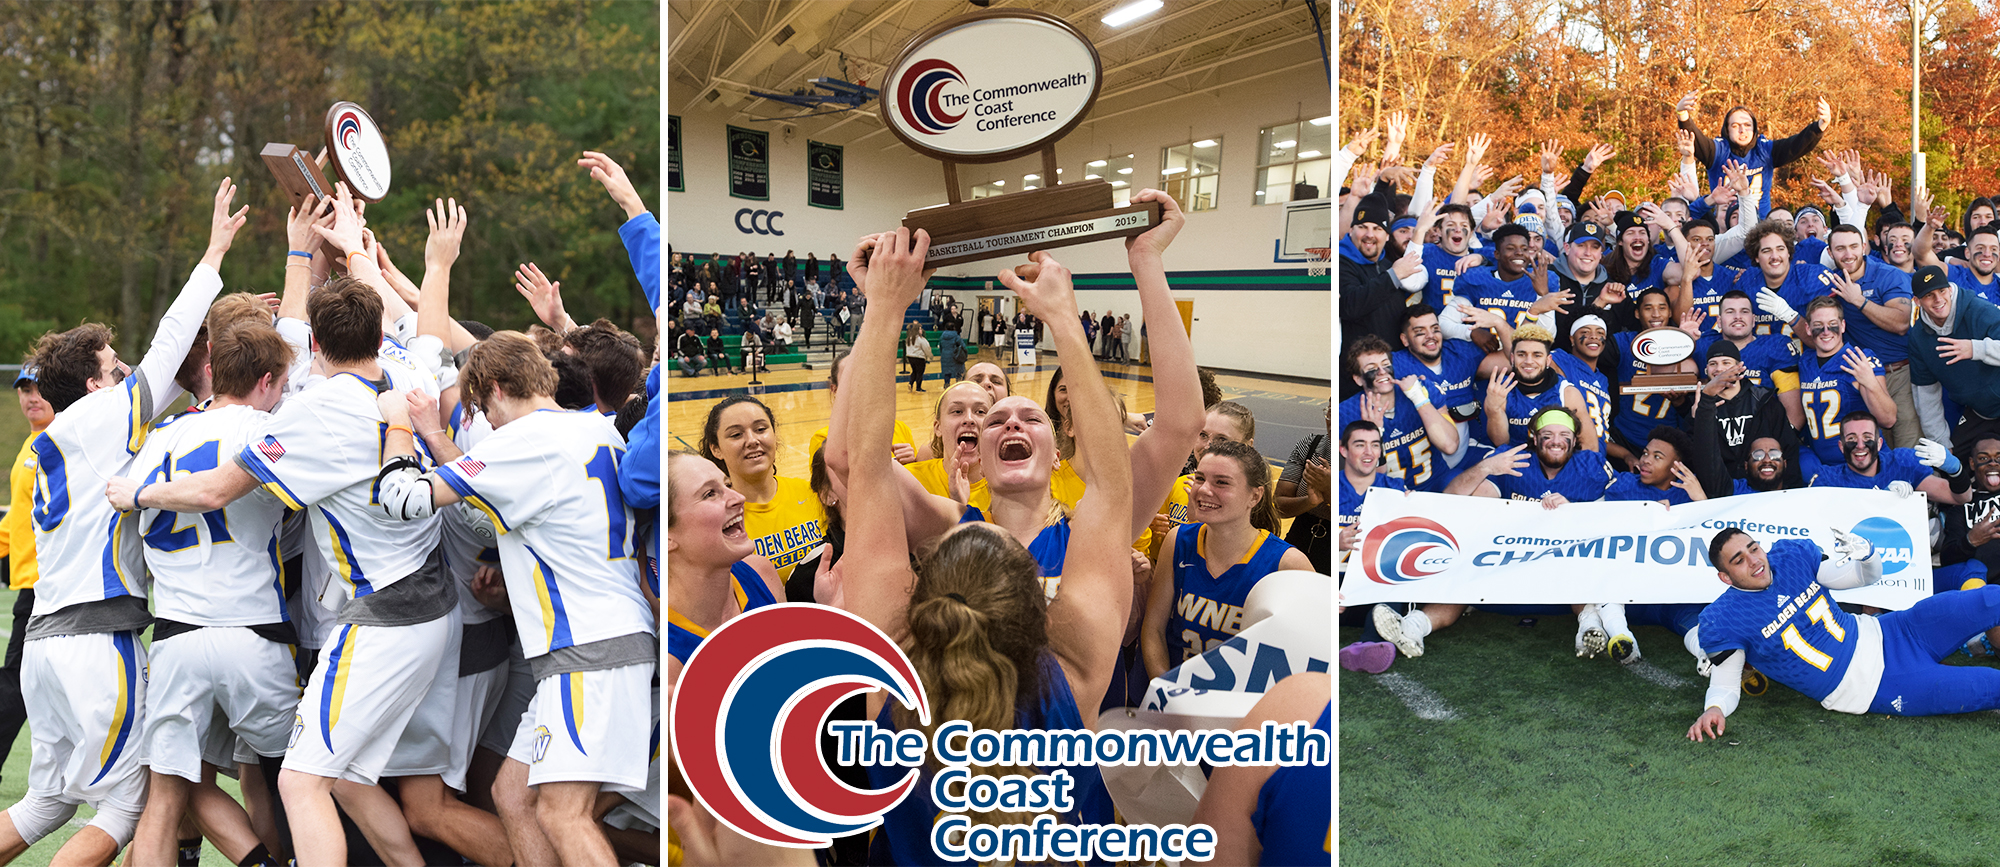 Western New England Women & Men Both Finish 4th in Final CCC All-Sport Trophy Standings